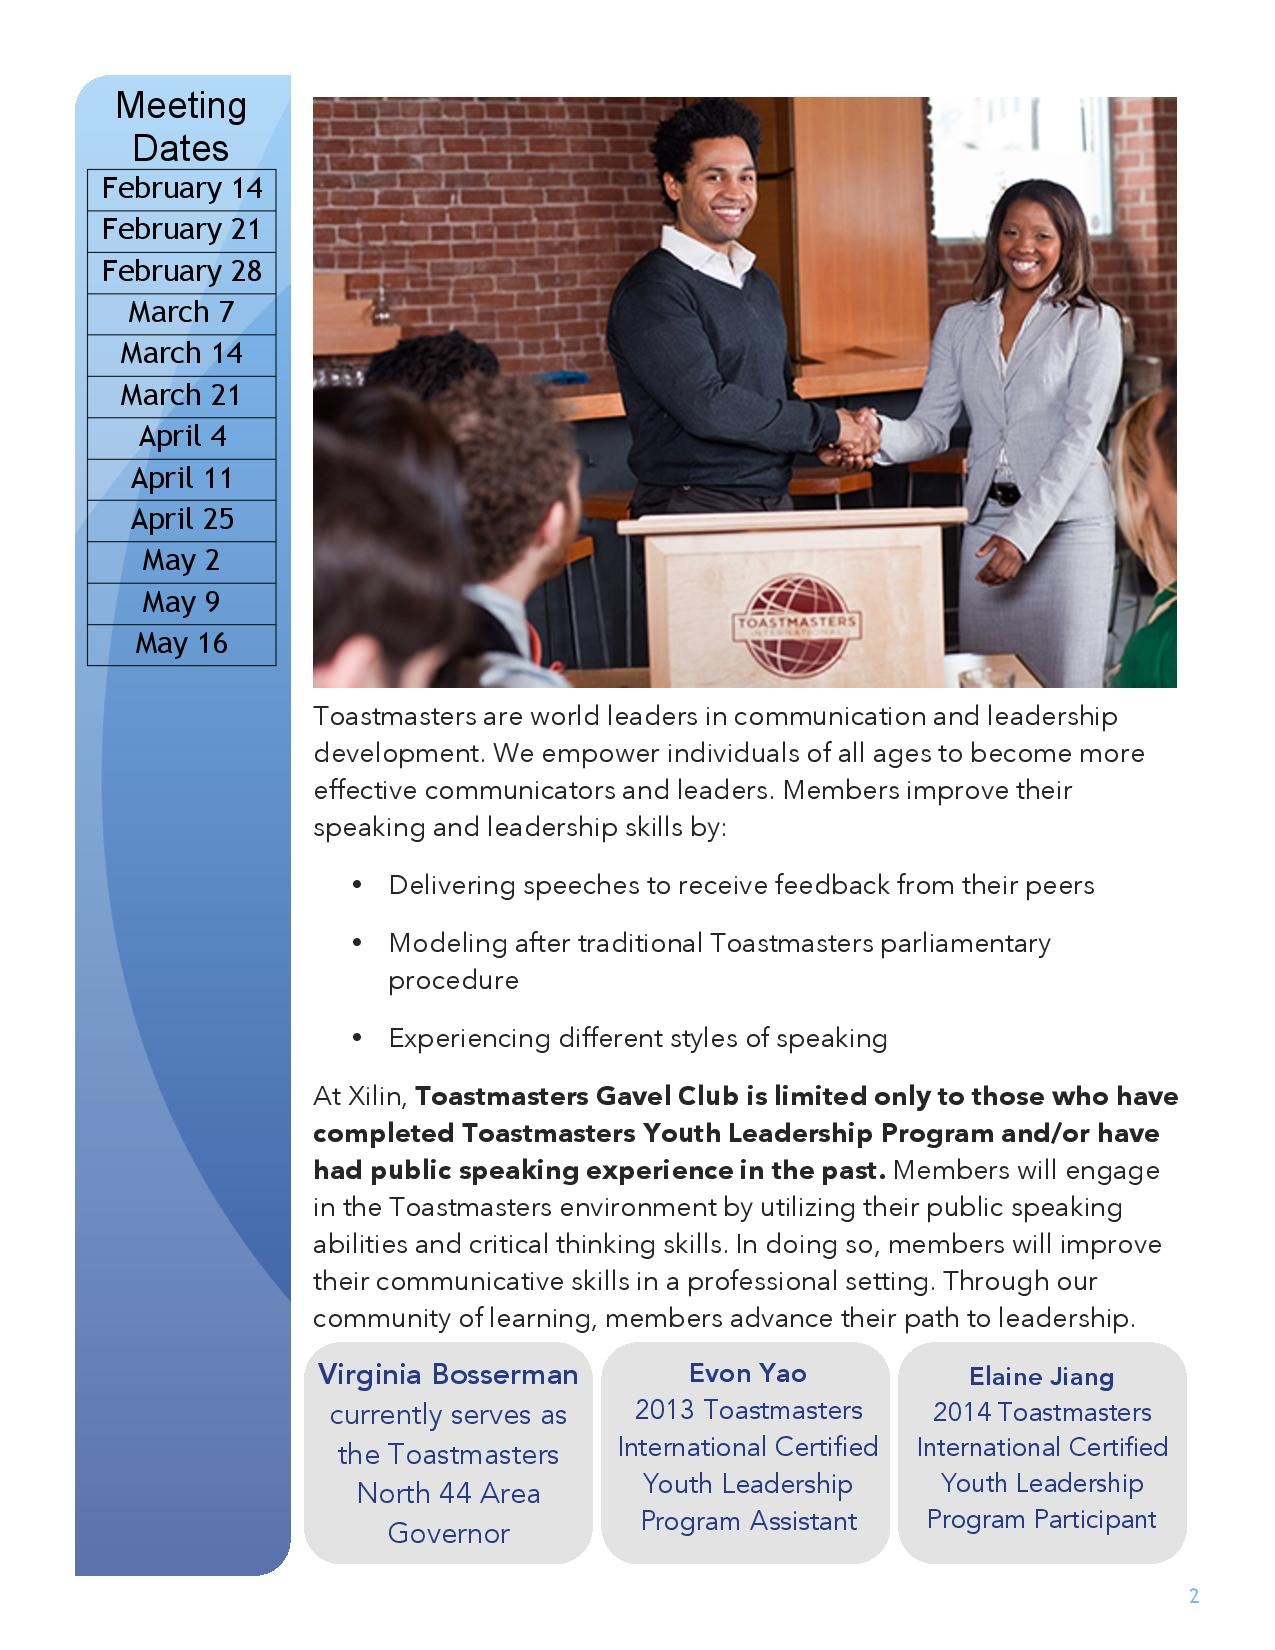 club mission toastmasters international provides a supportive and positive learning environment in which members are empowered to advance public speaking